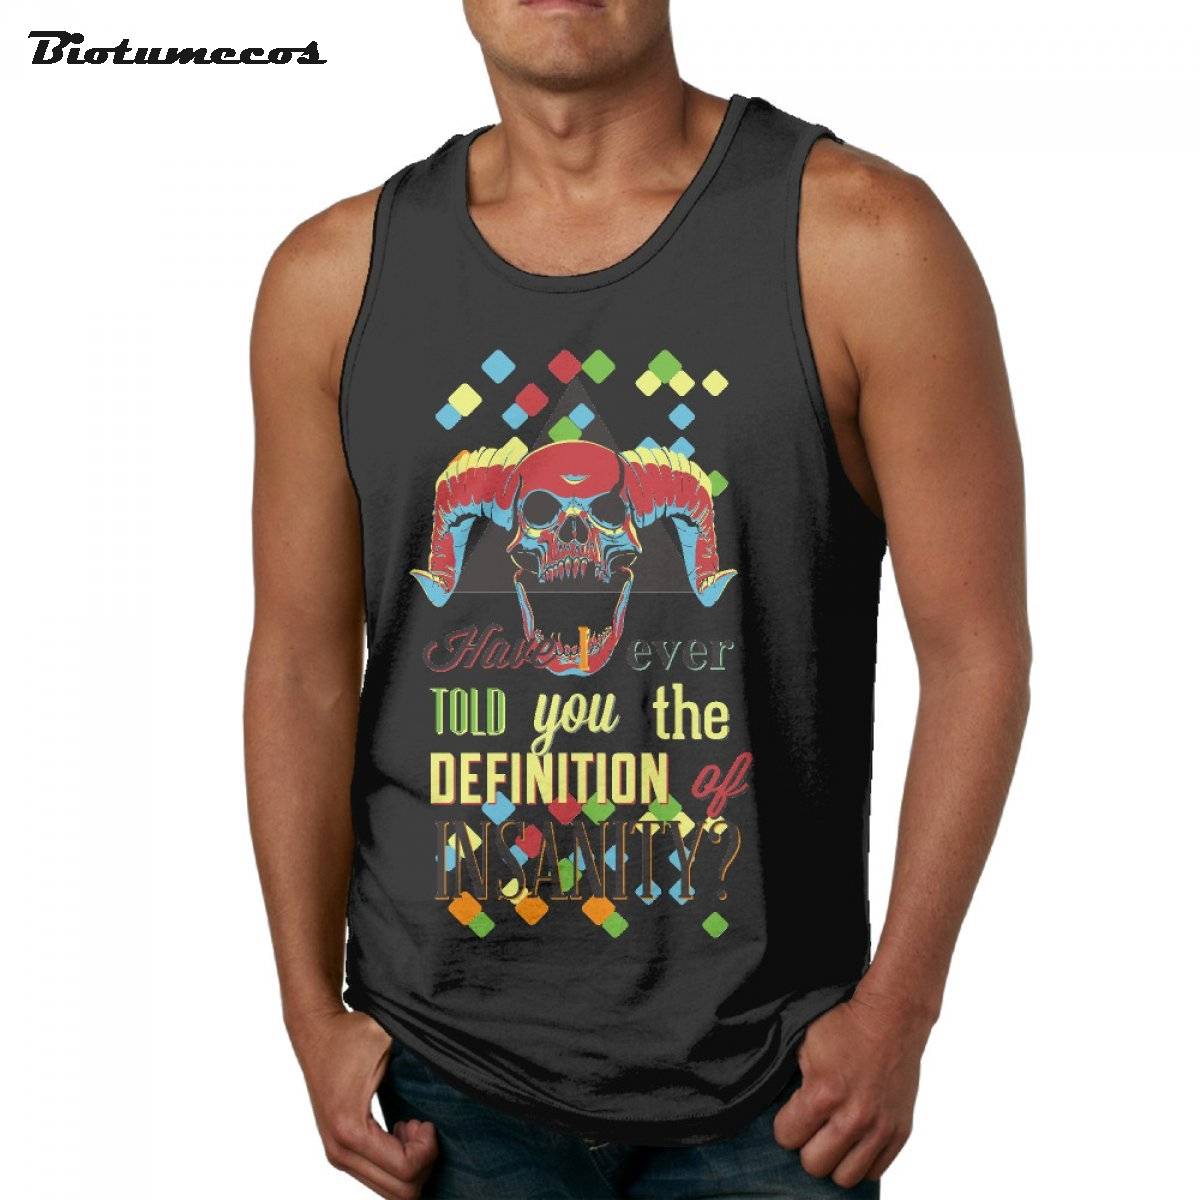 Men tank tops fashion 83